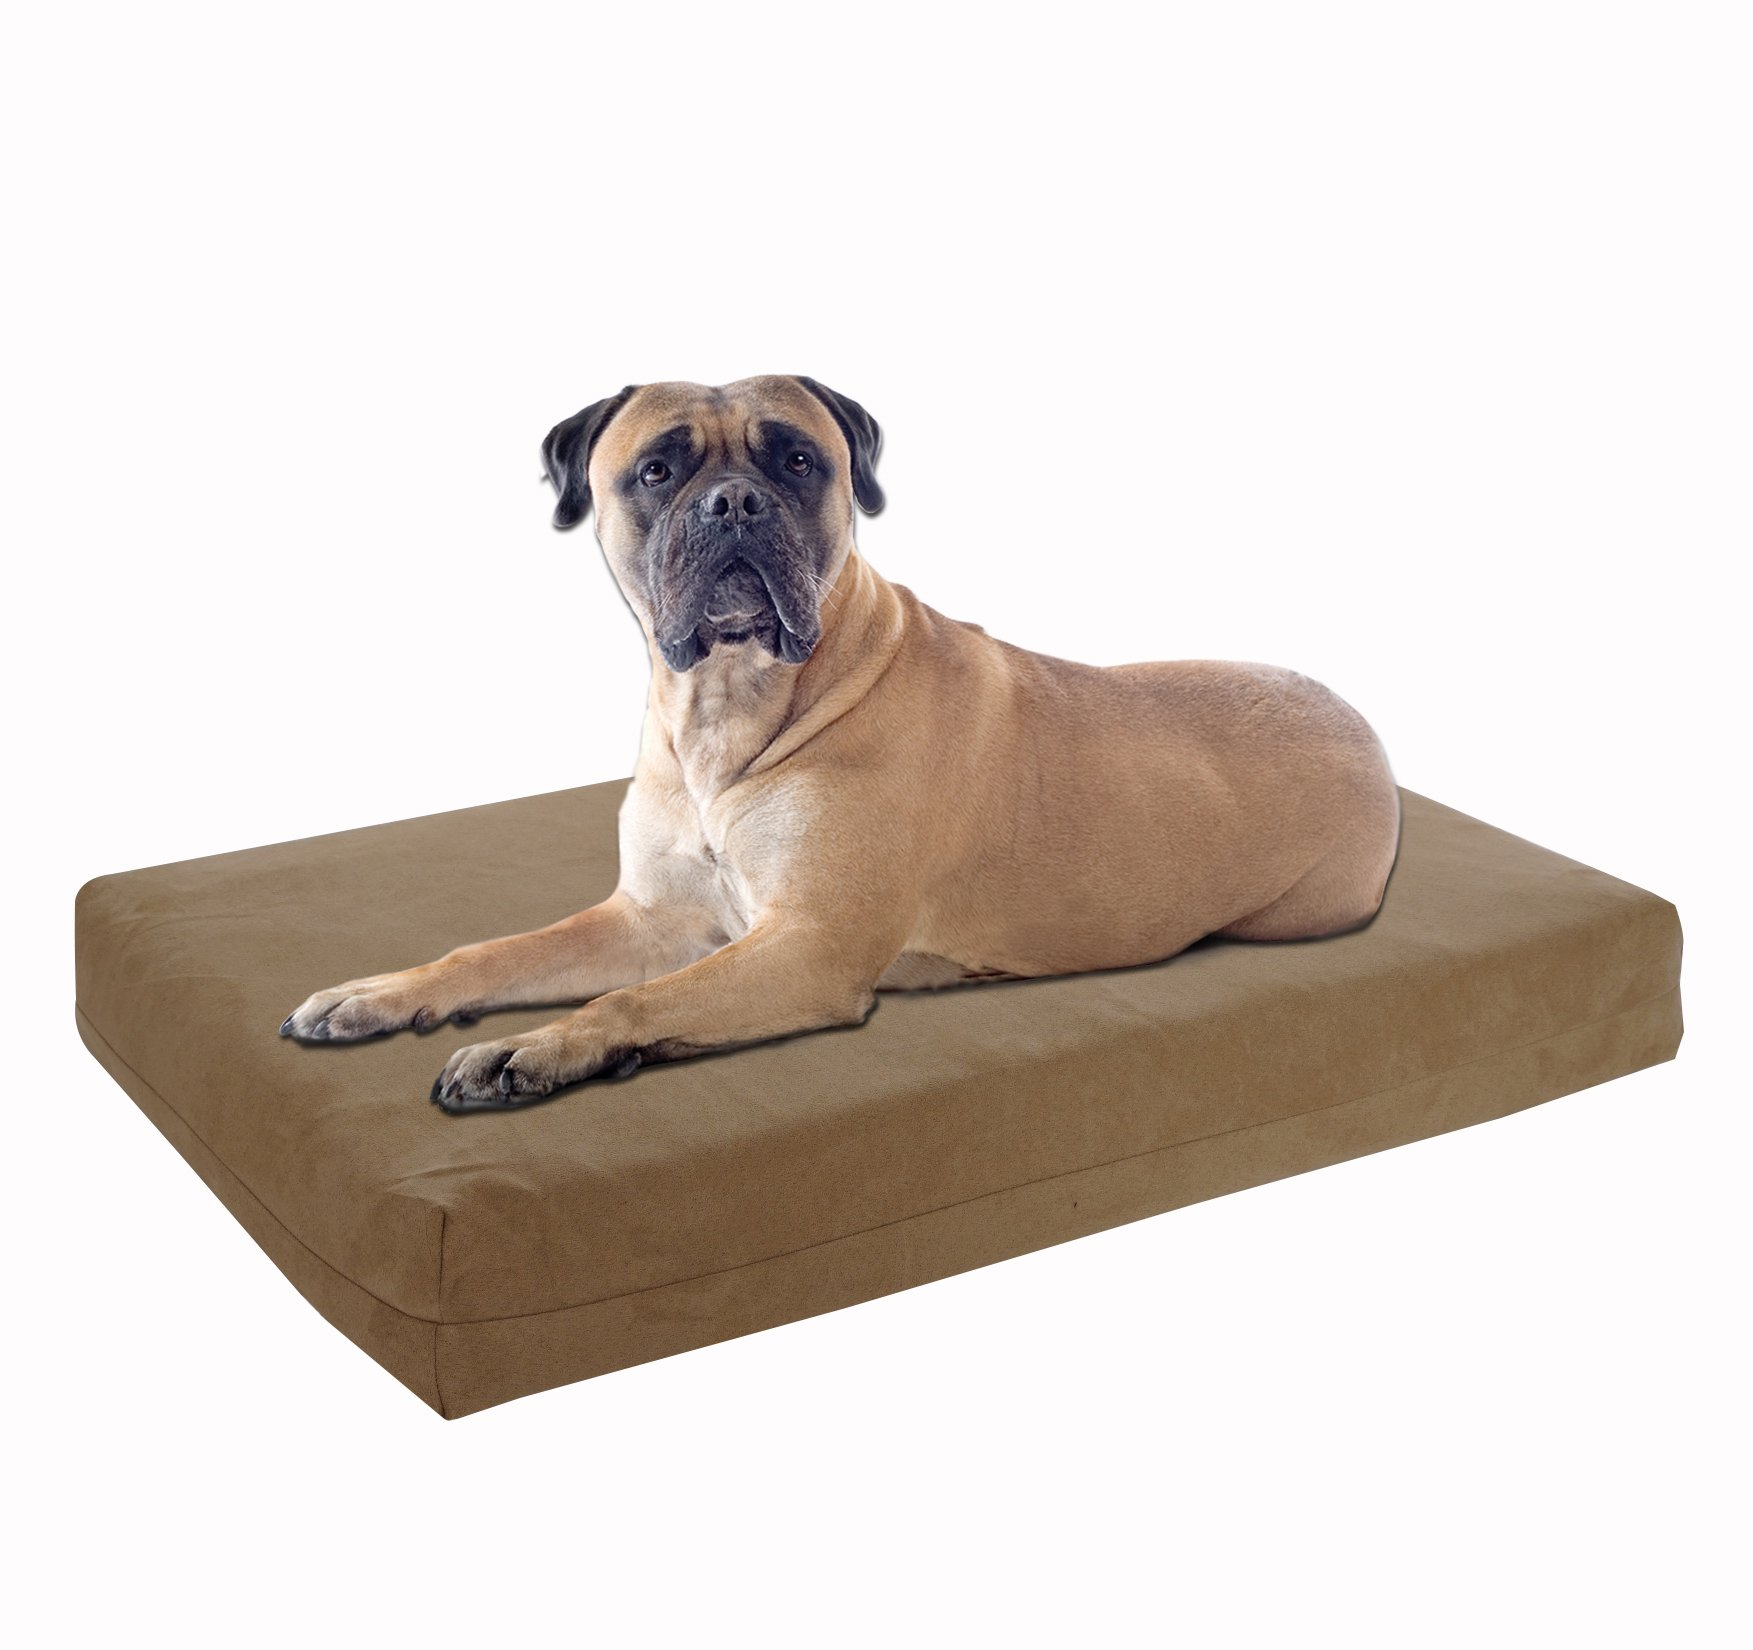 Pet Support Systems Washable Orthopedic Memory Foam Dog Bed, Large, 46-Inch x 28-Inch x 4-Inch, Khaki / Tan (Plush Microsuede)